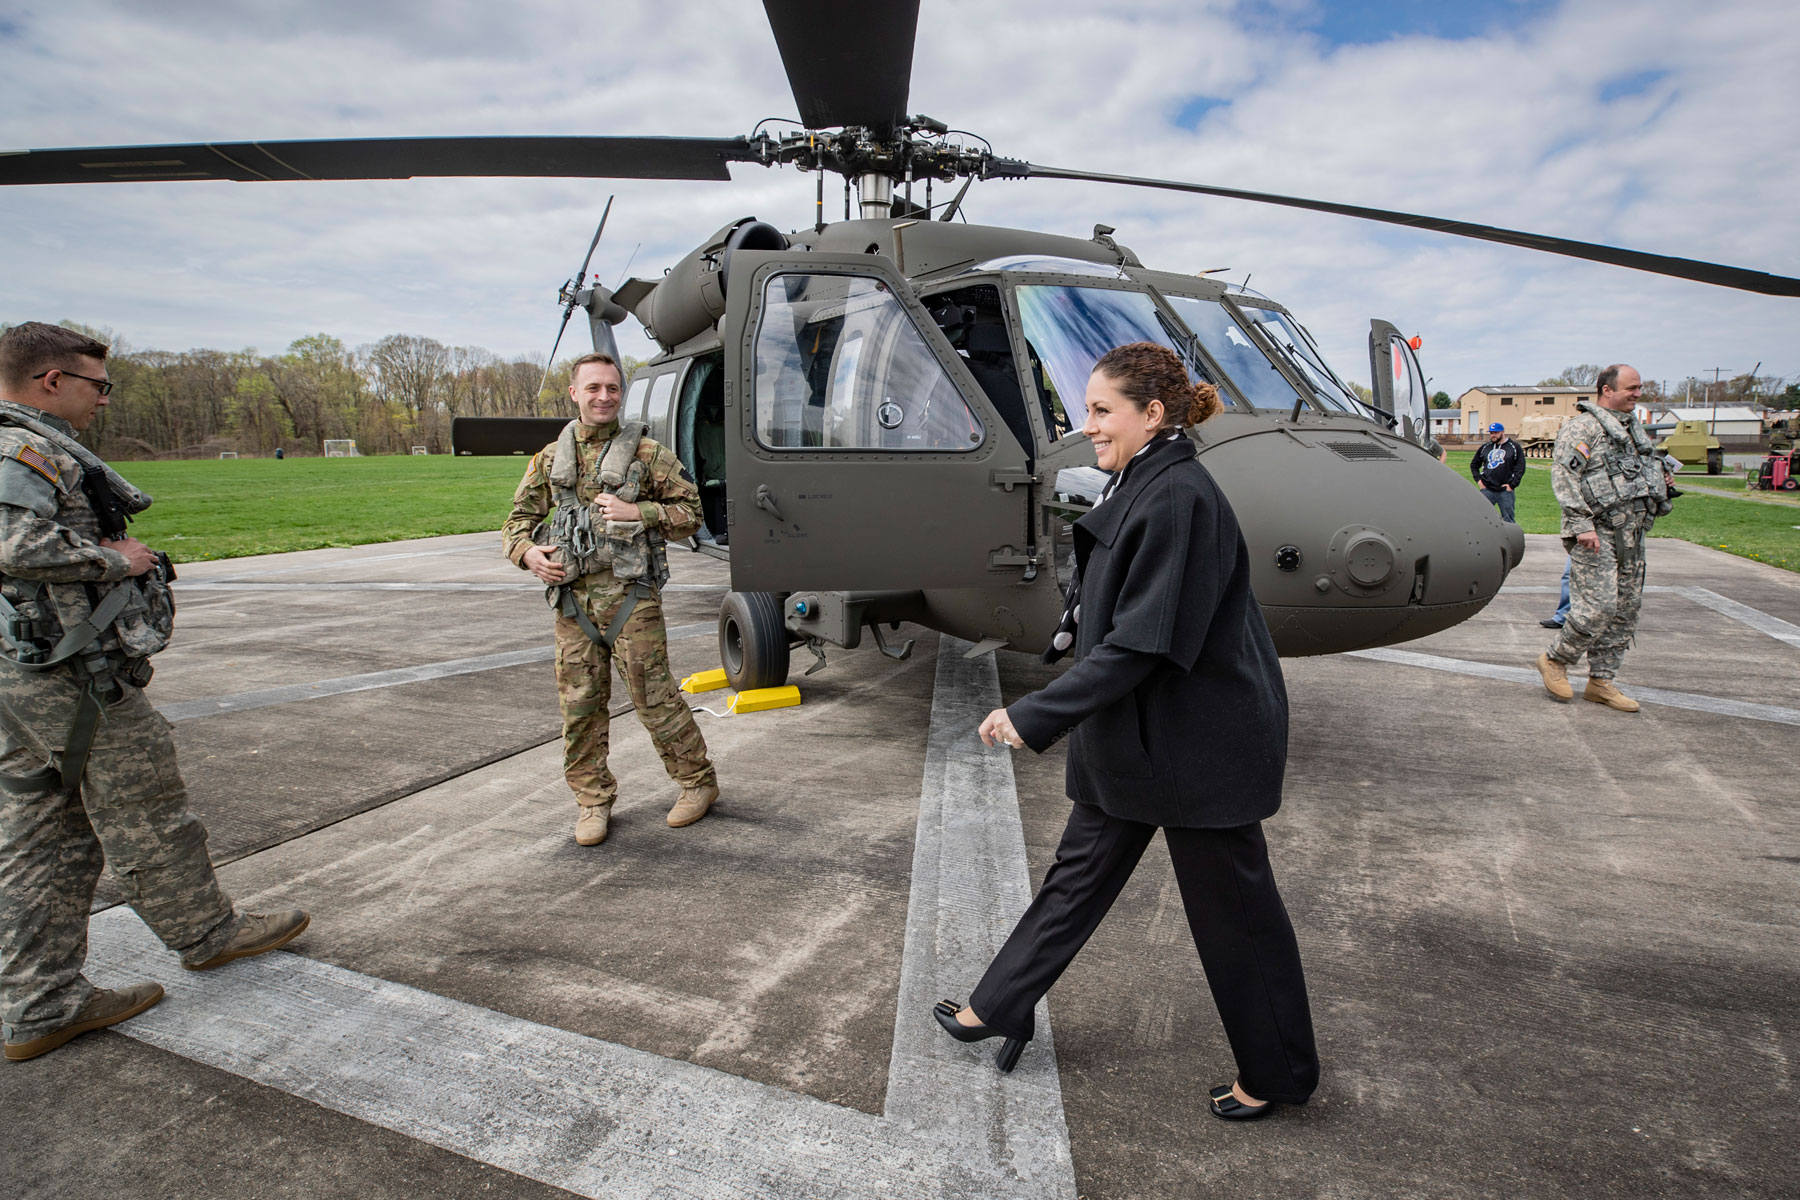 US Gives 3 Black Hawk Helicopters to Albania Military